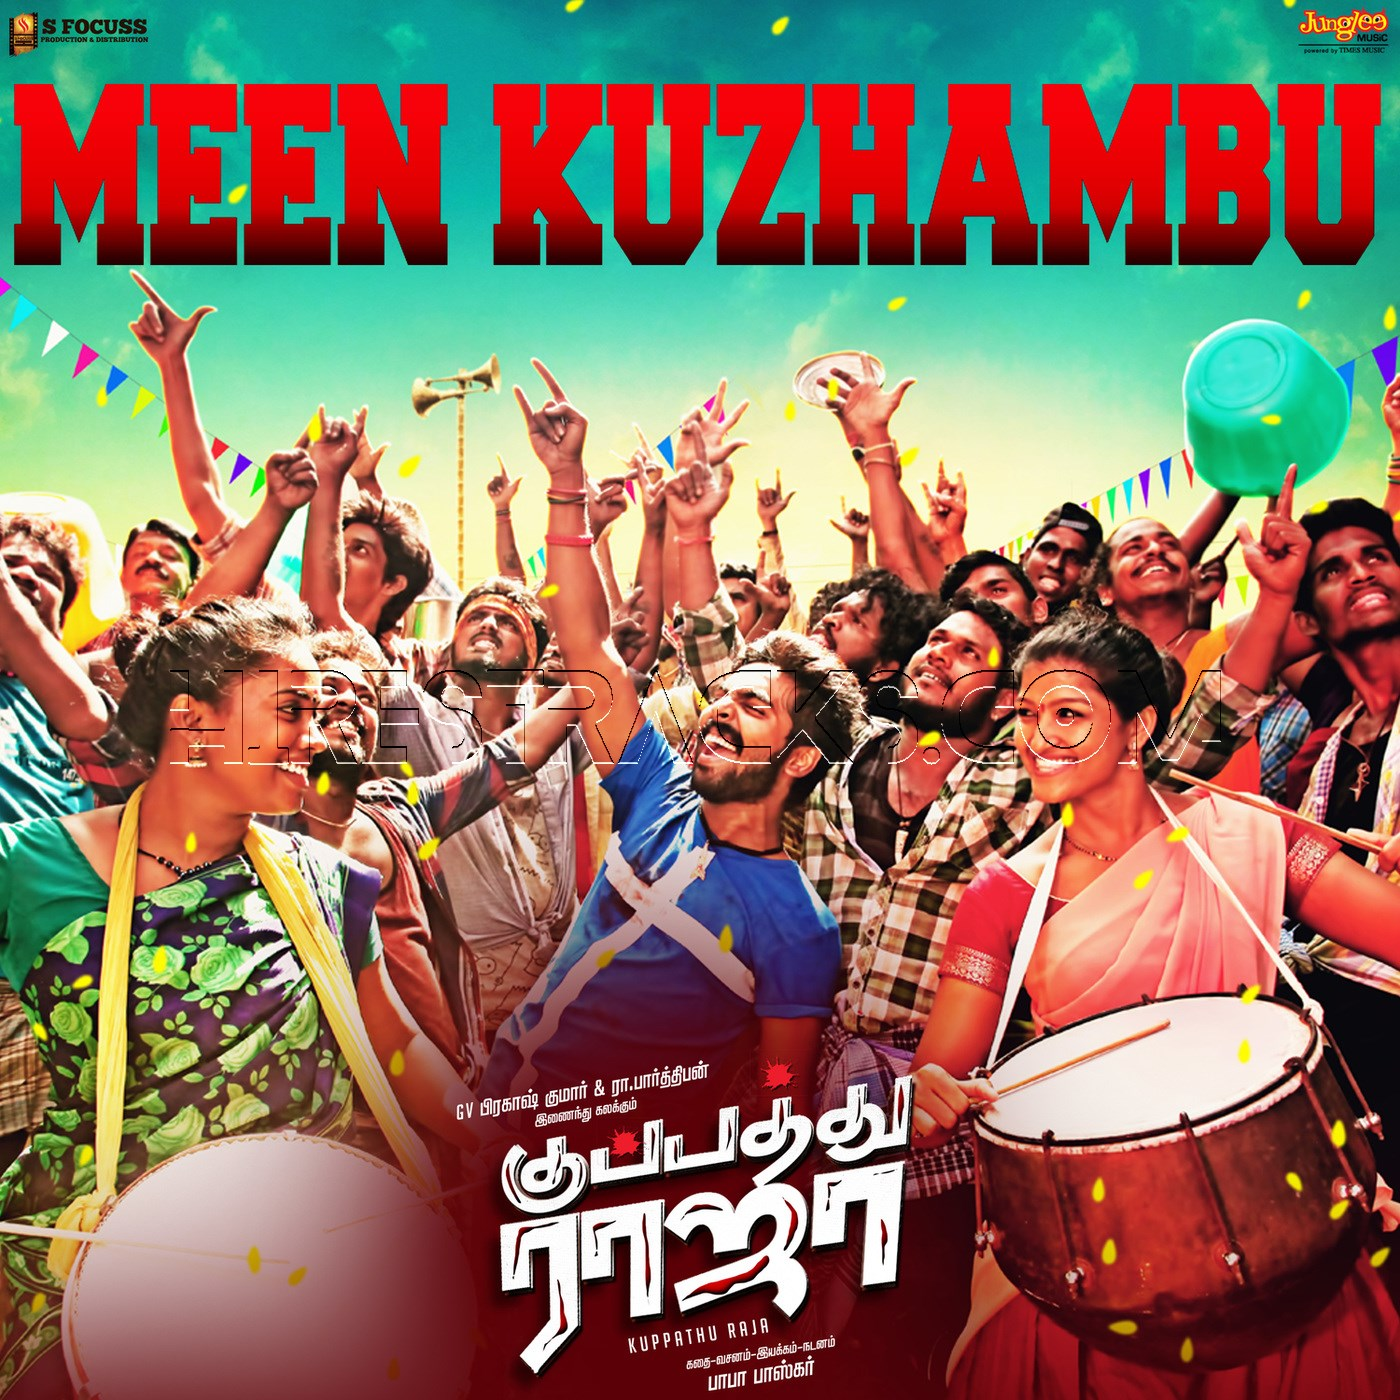 Meen Kuzhambu (From Kuppathu Raja) – Single (2019)